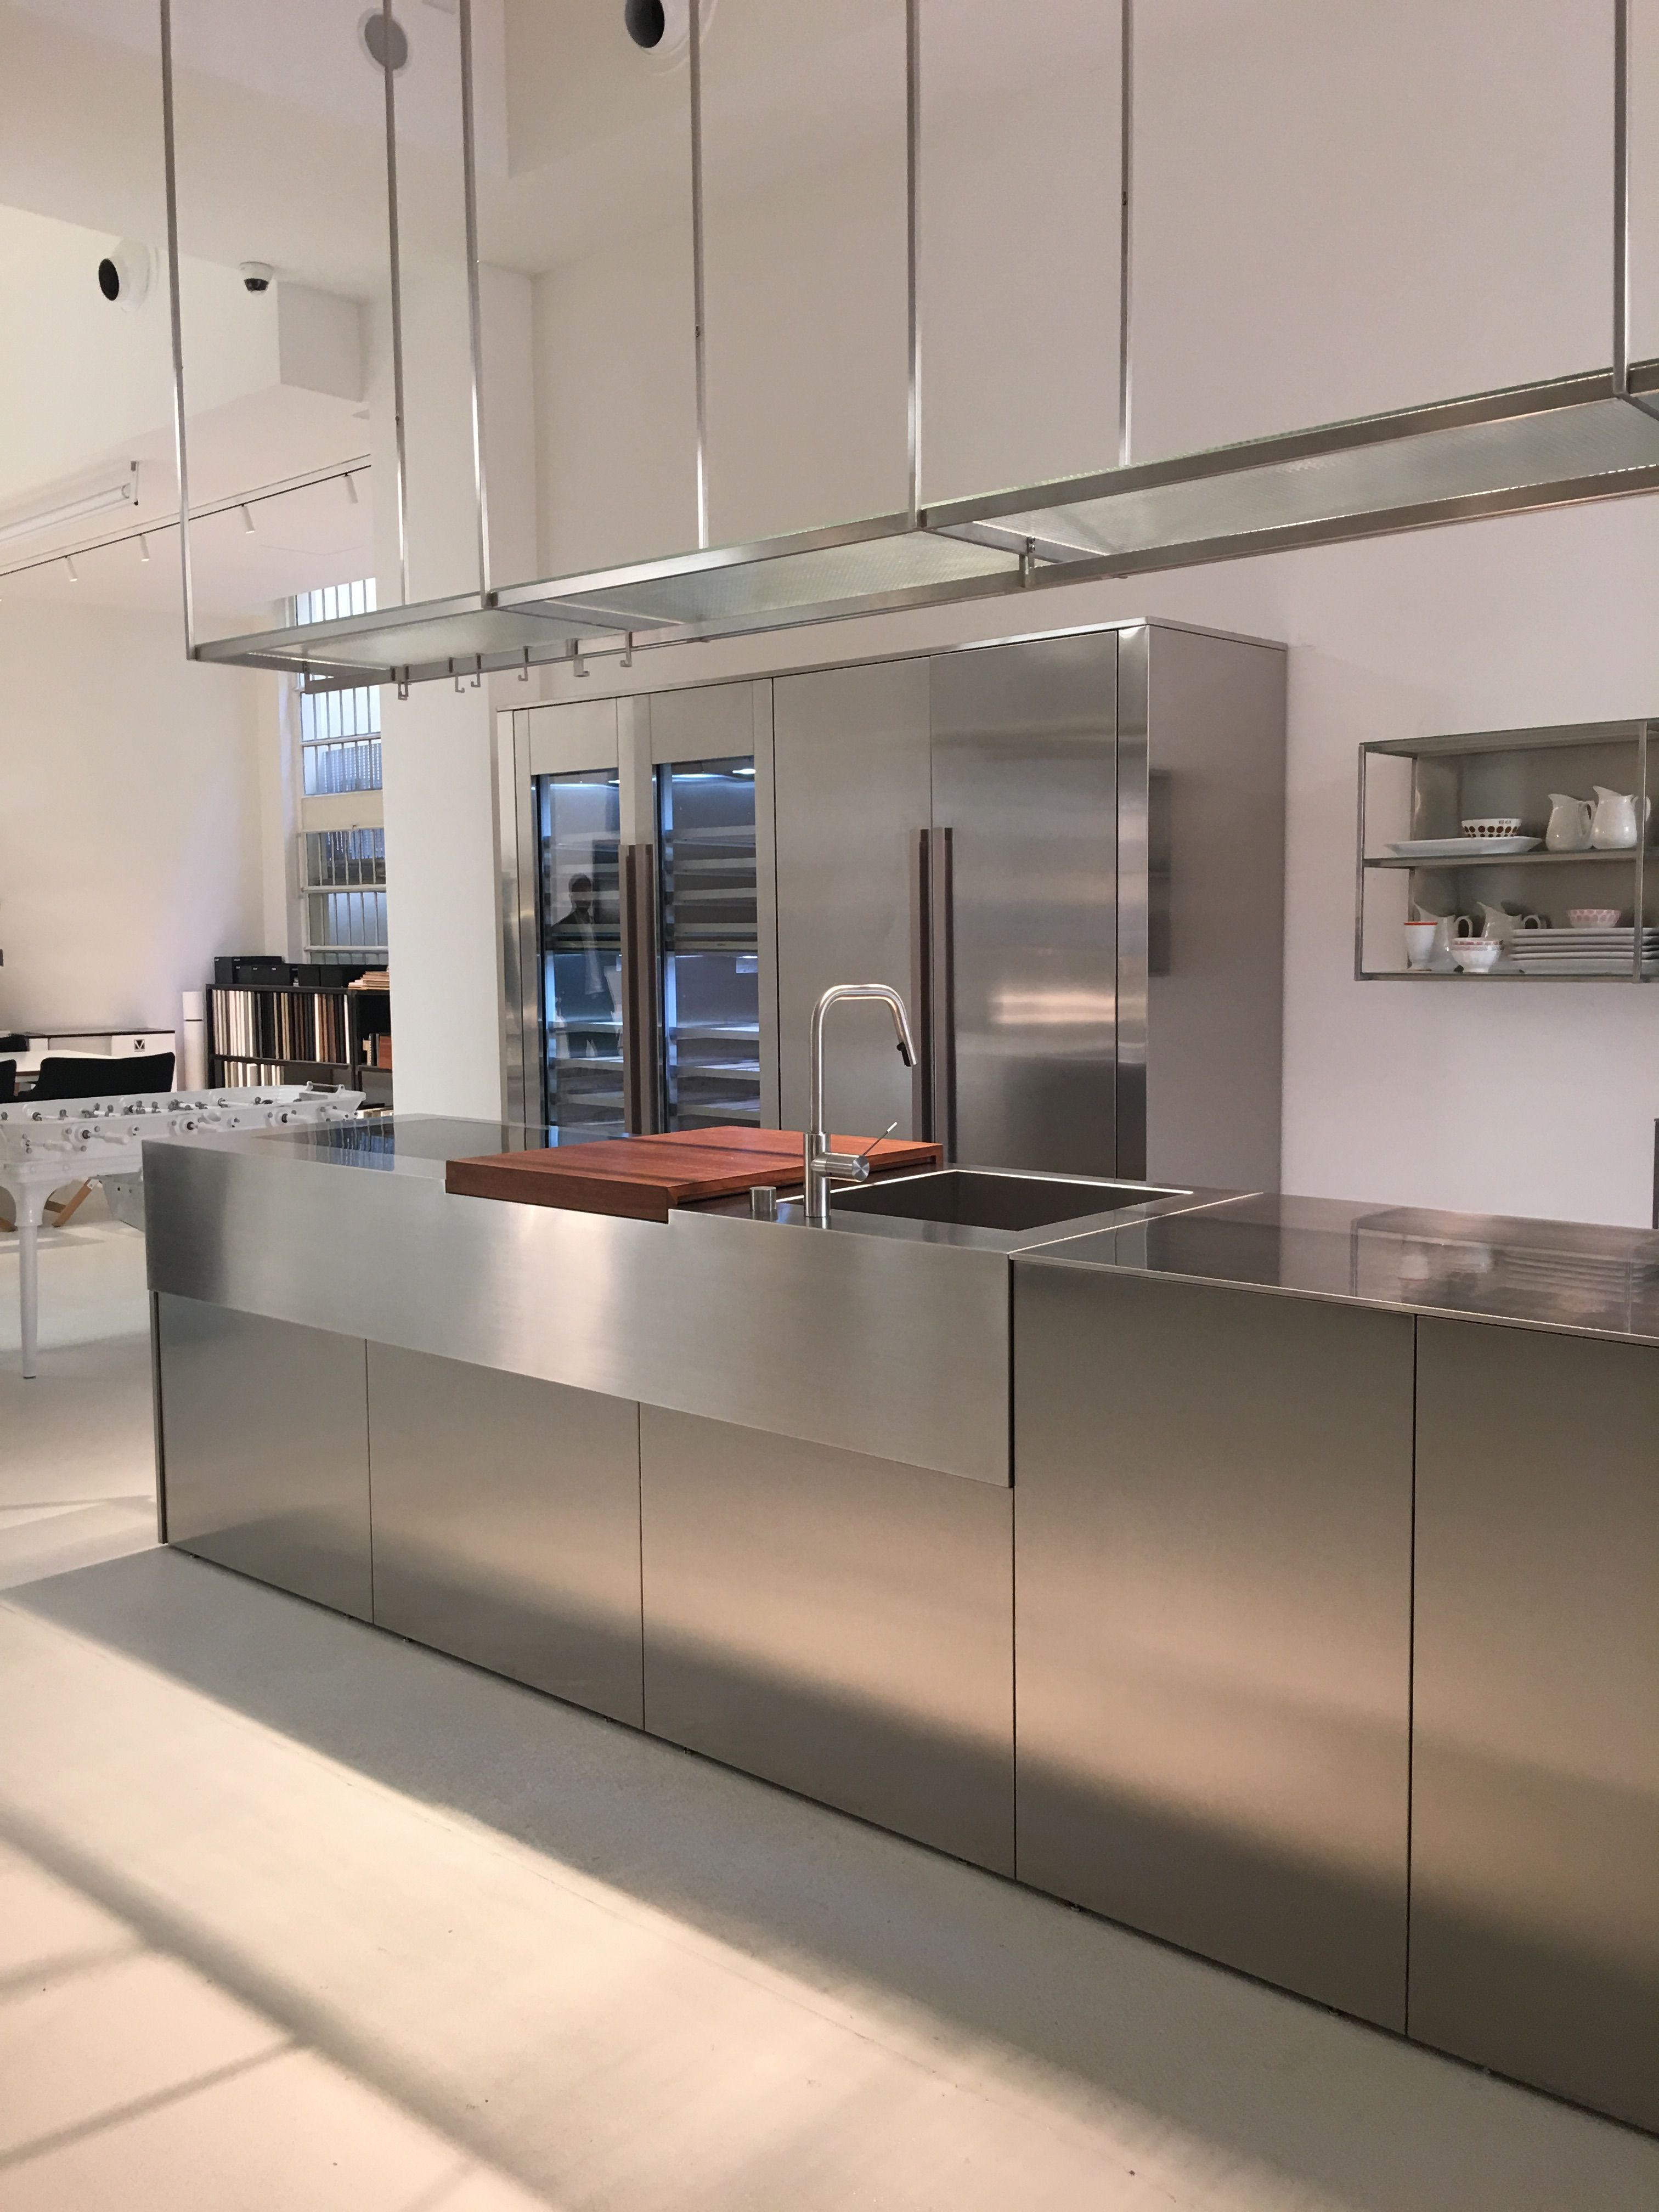 Stainless Steel Kitchen By Boffi At De Padova Fionalynch Fionalynchdesign Depadova